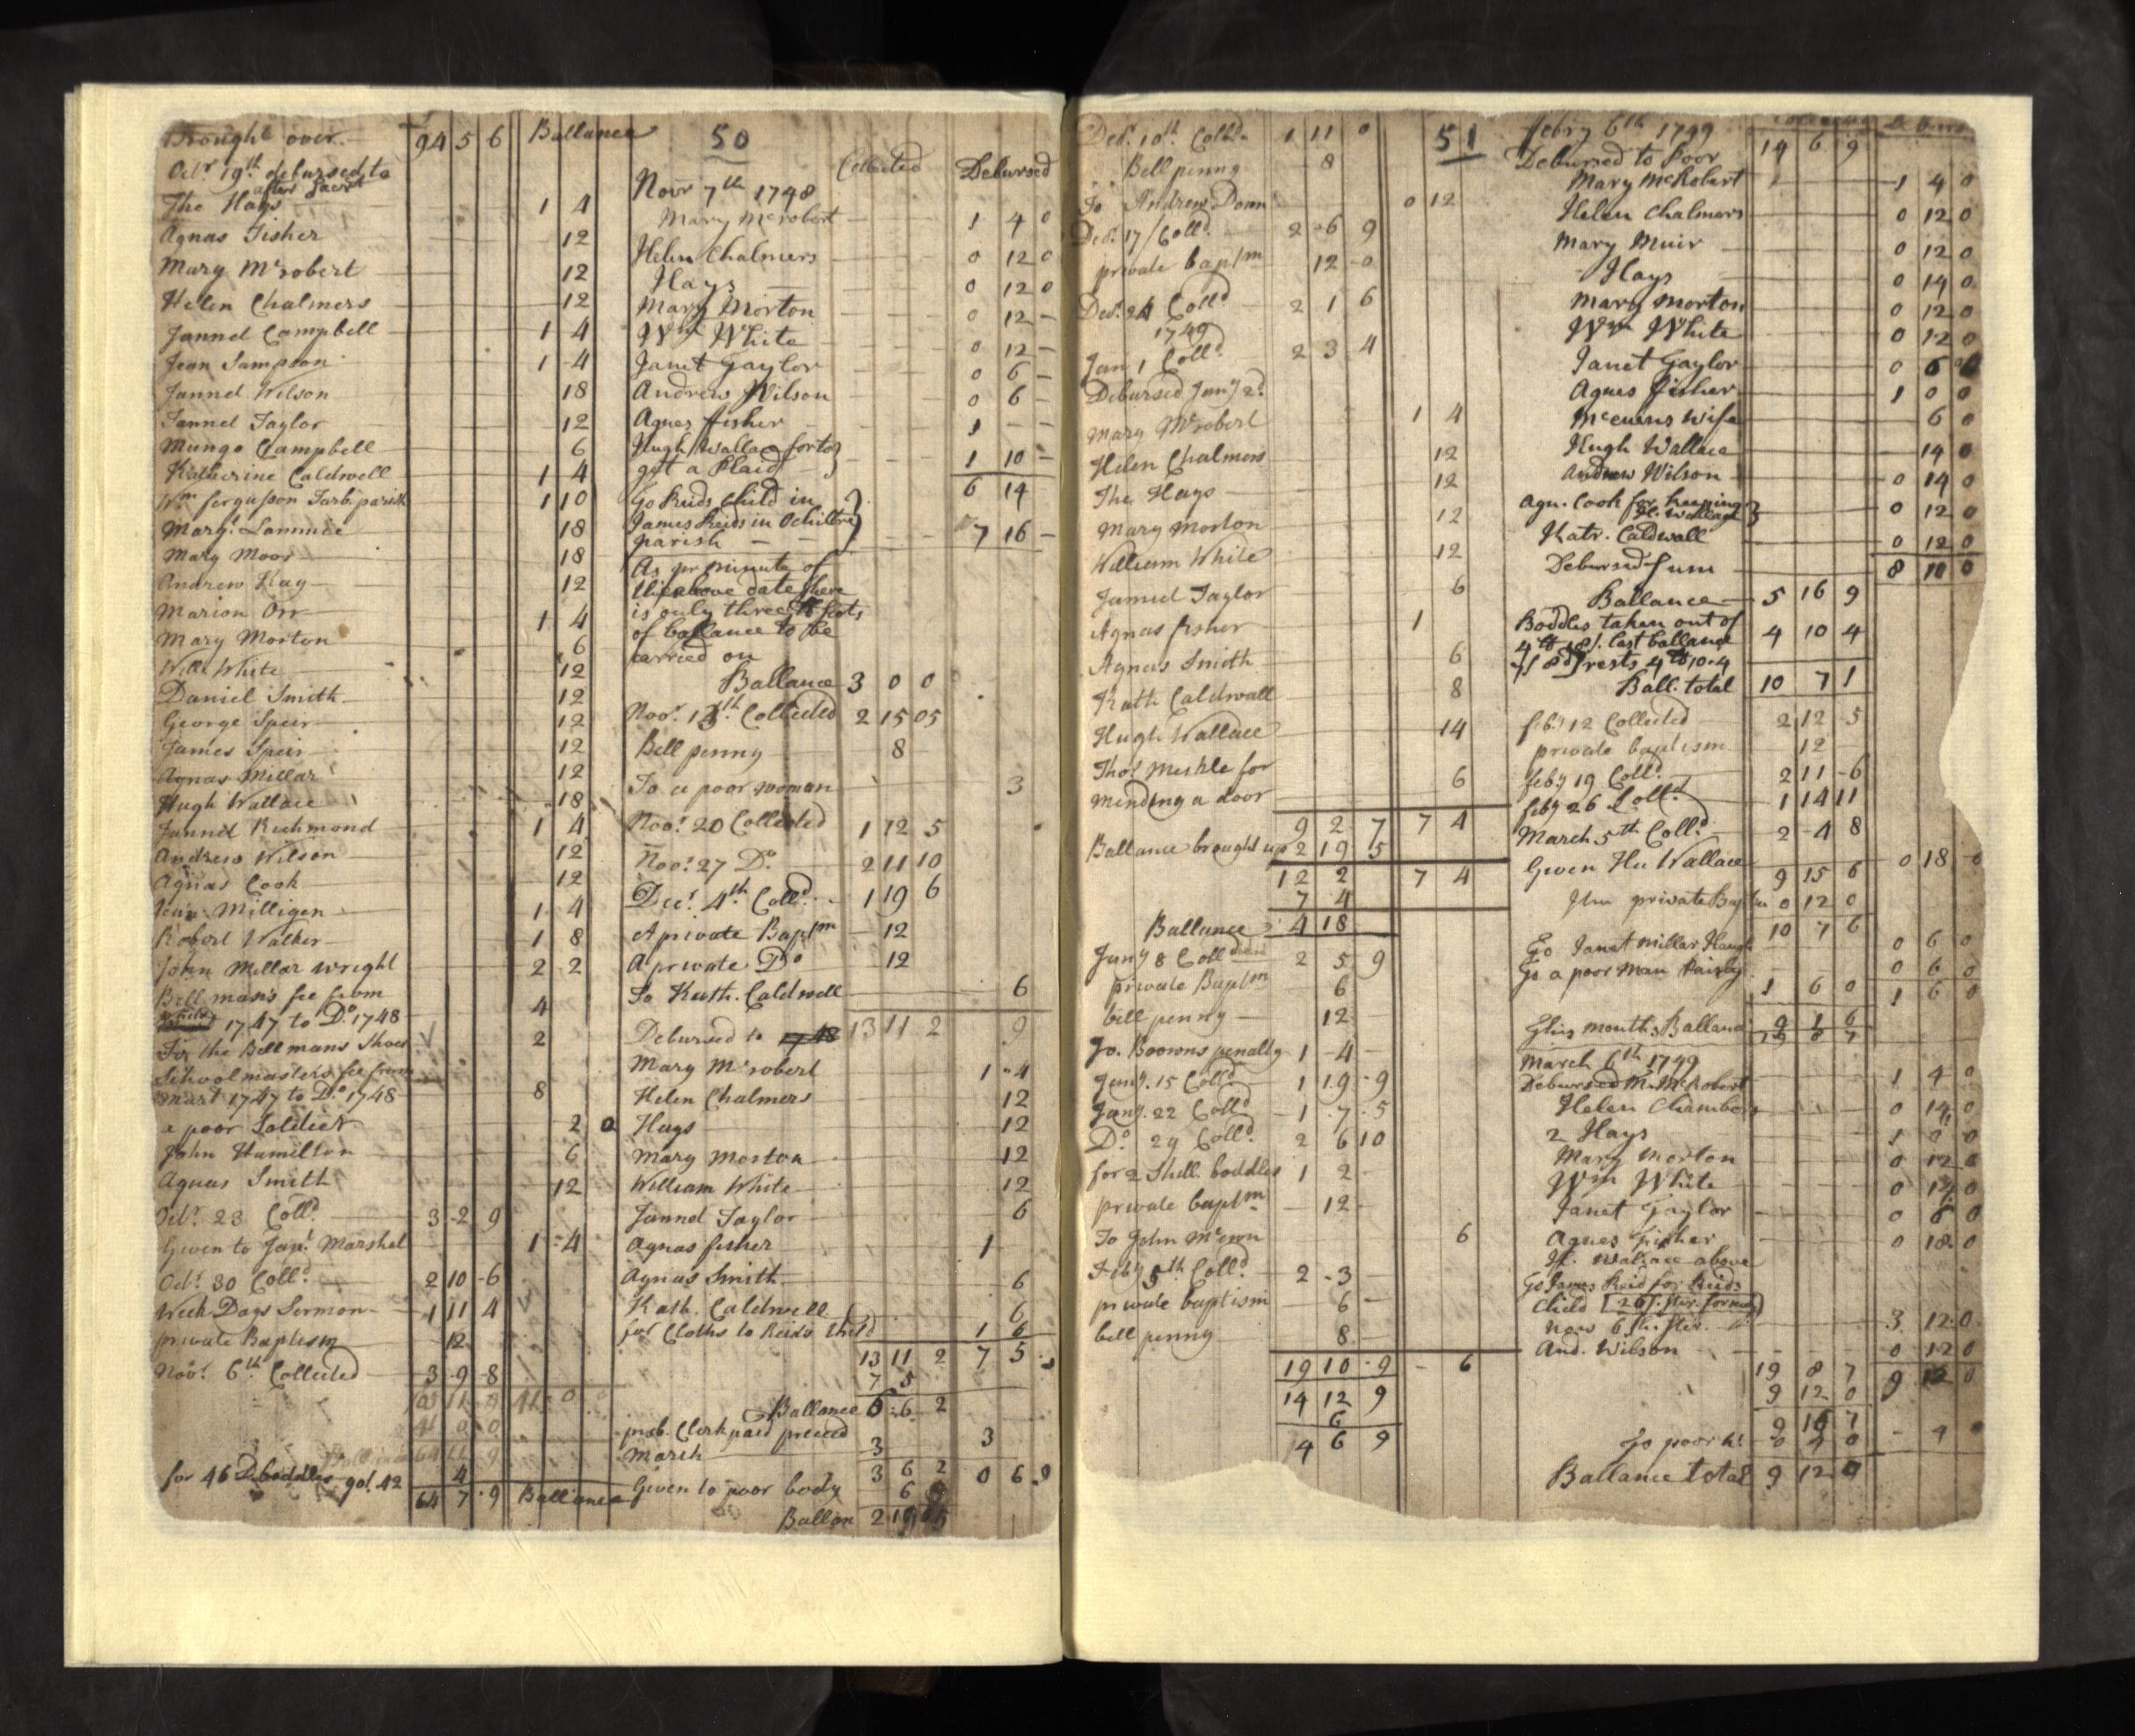 Extract from the accounts of Mauchline in 1749